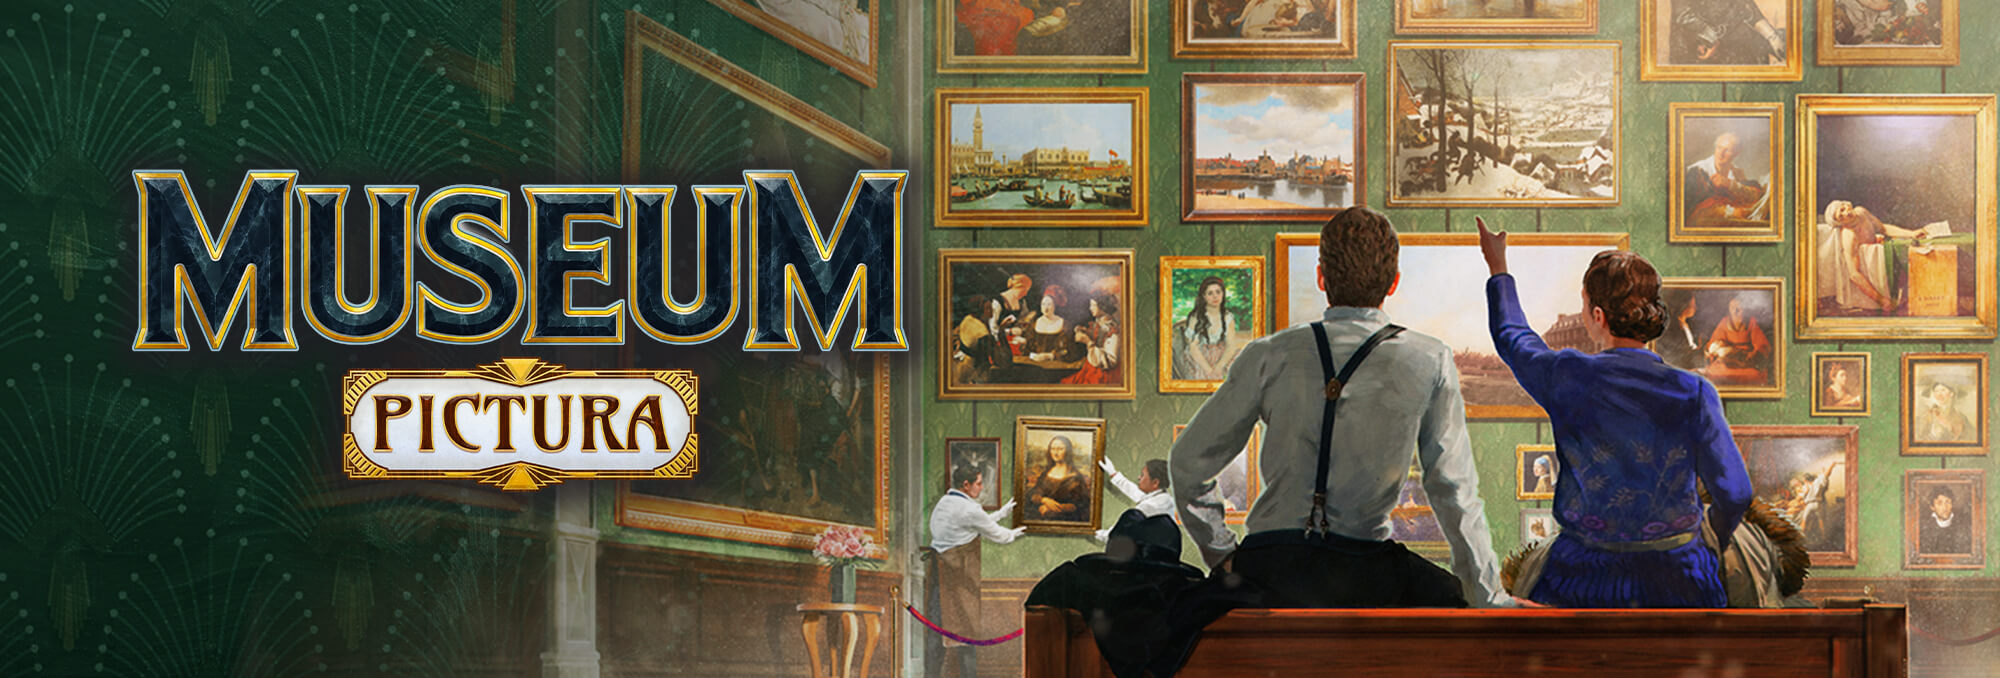 Museum-Pictura_Web-banner-2000×678